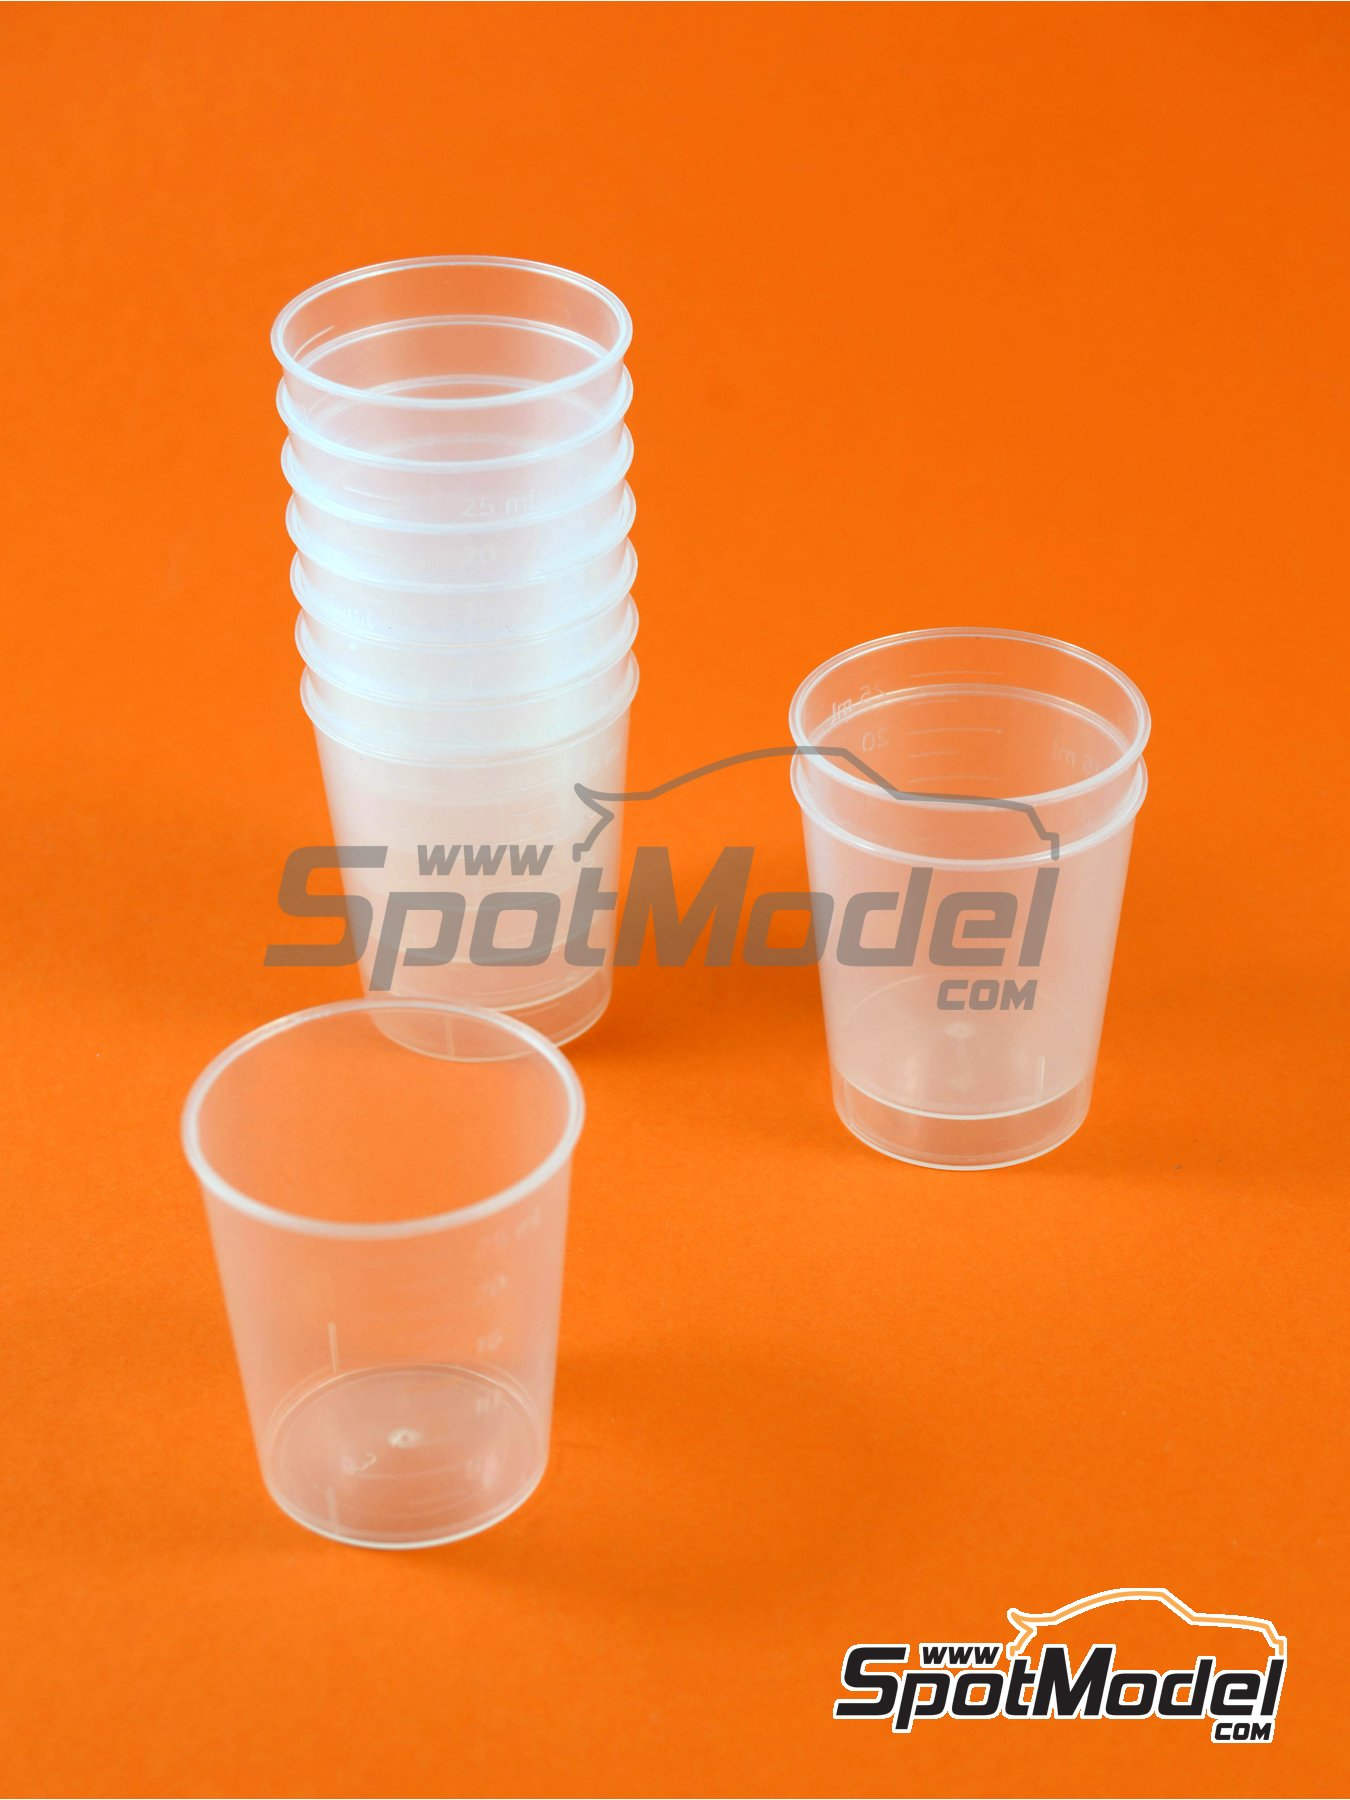 Paint cup for mixing and measuring | Tools manufactured by SpotModel (ref. SPOT-007) image